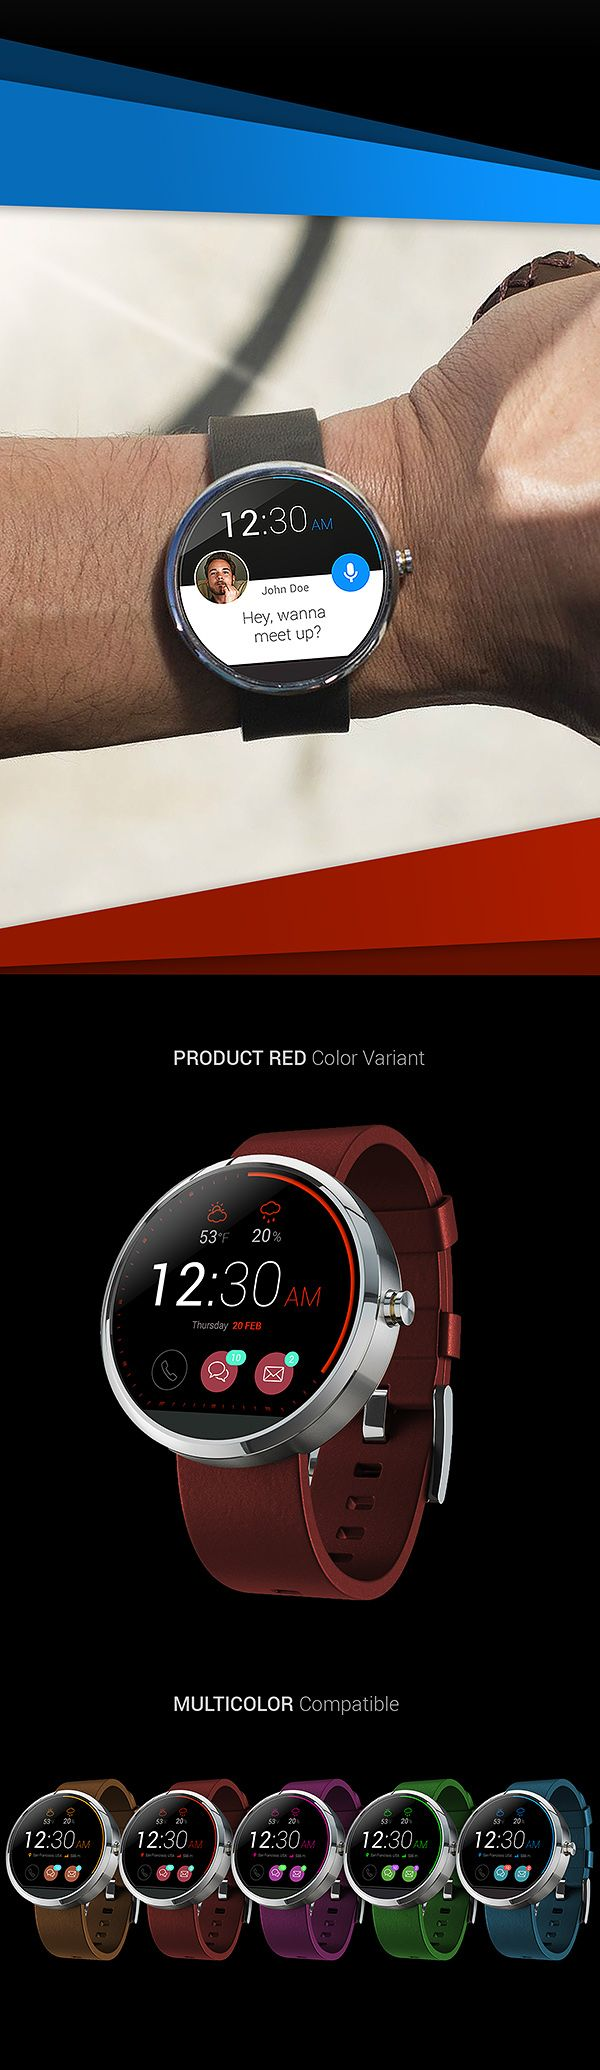 moto360 - Smart Watch Concept by Denny Moritz, via Behance #motorola